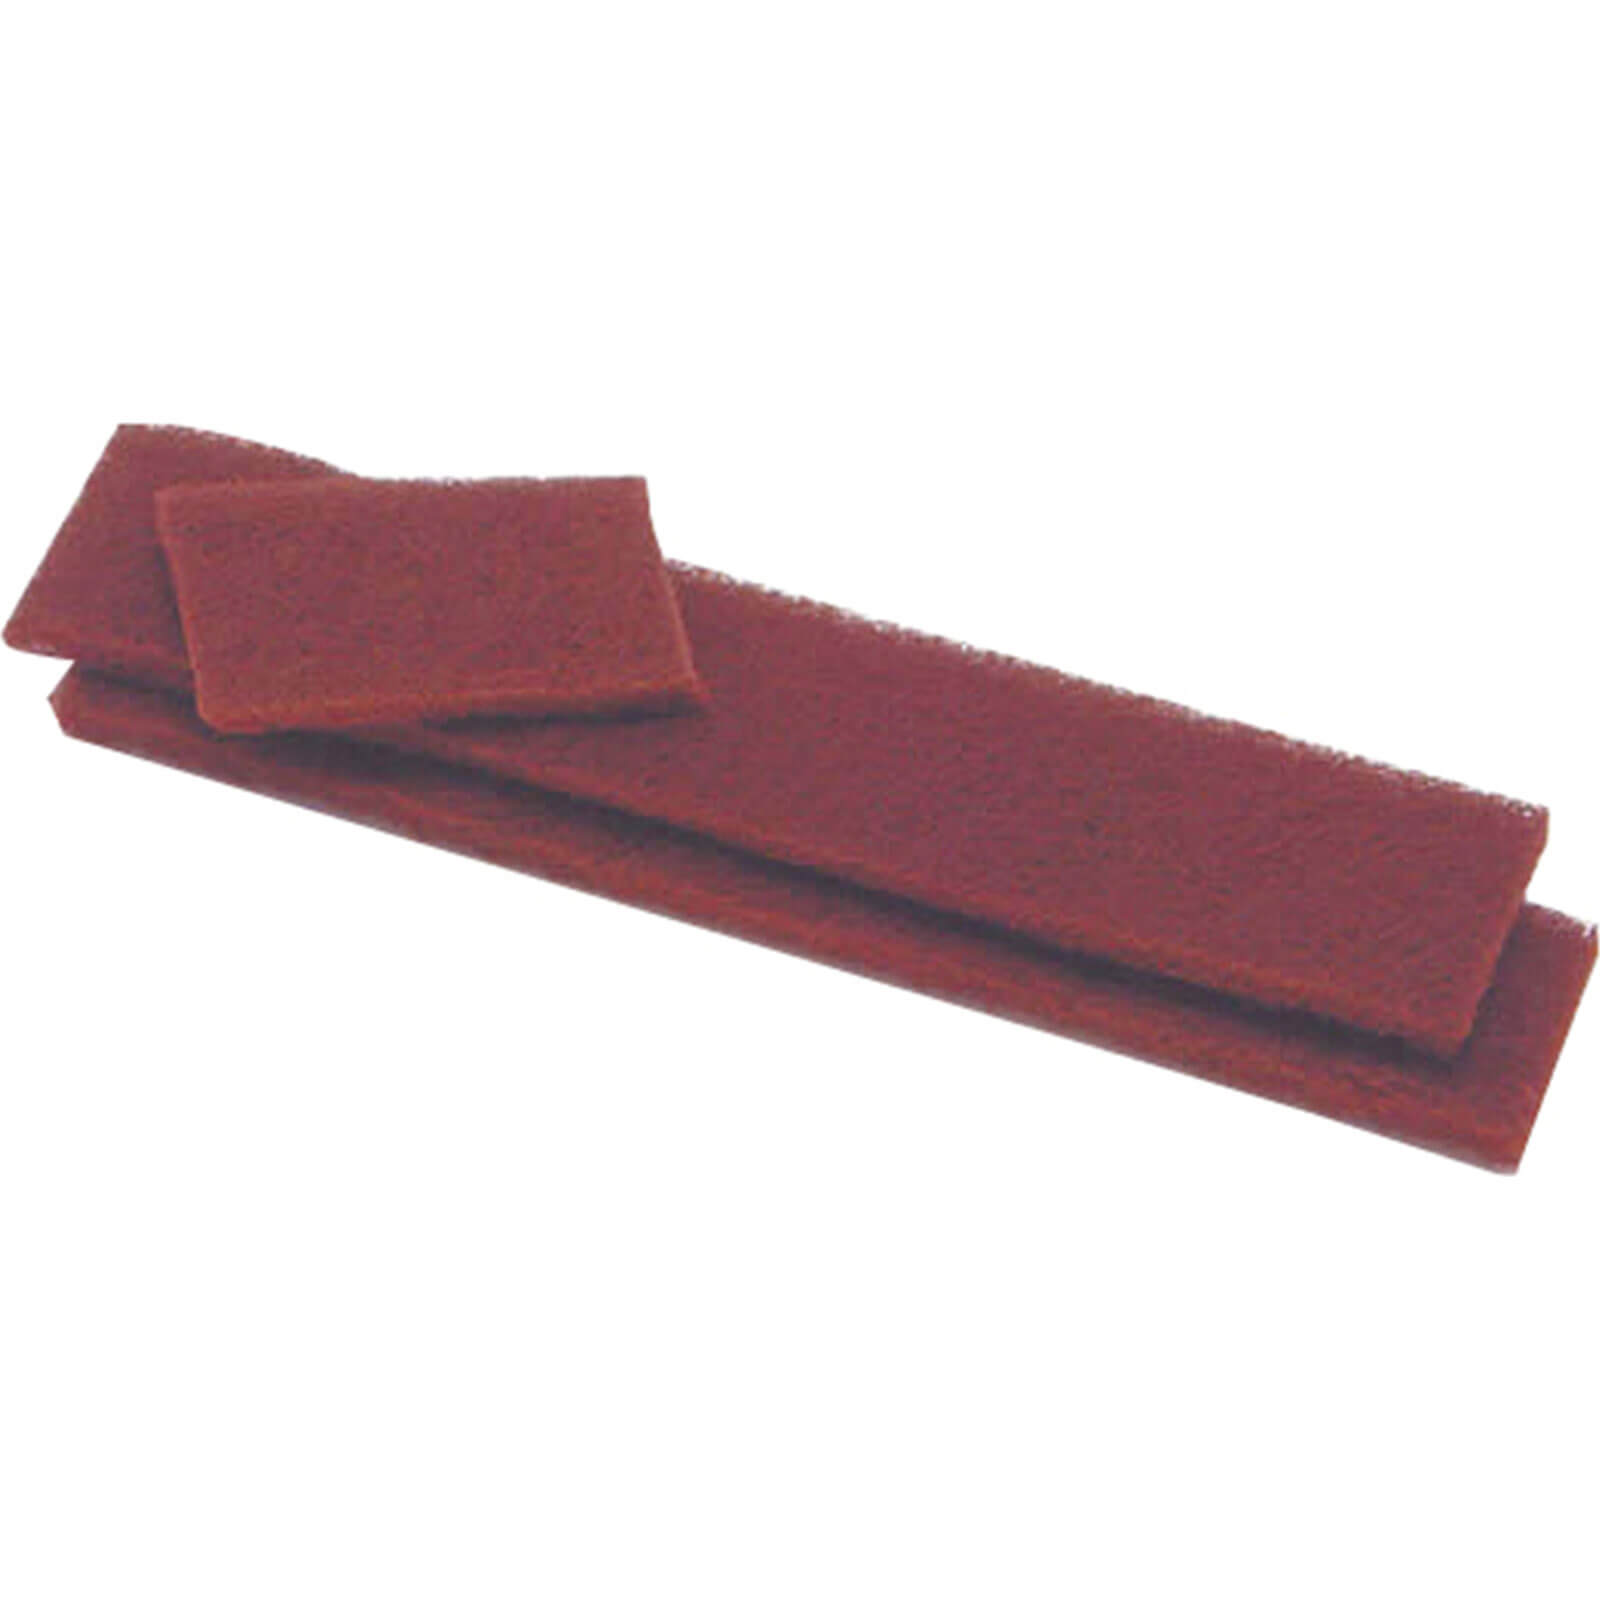 Image of Monument 3025R Cleaning and Polish Pads Pack of 6